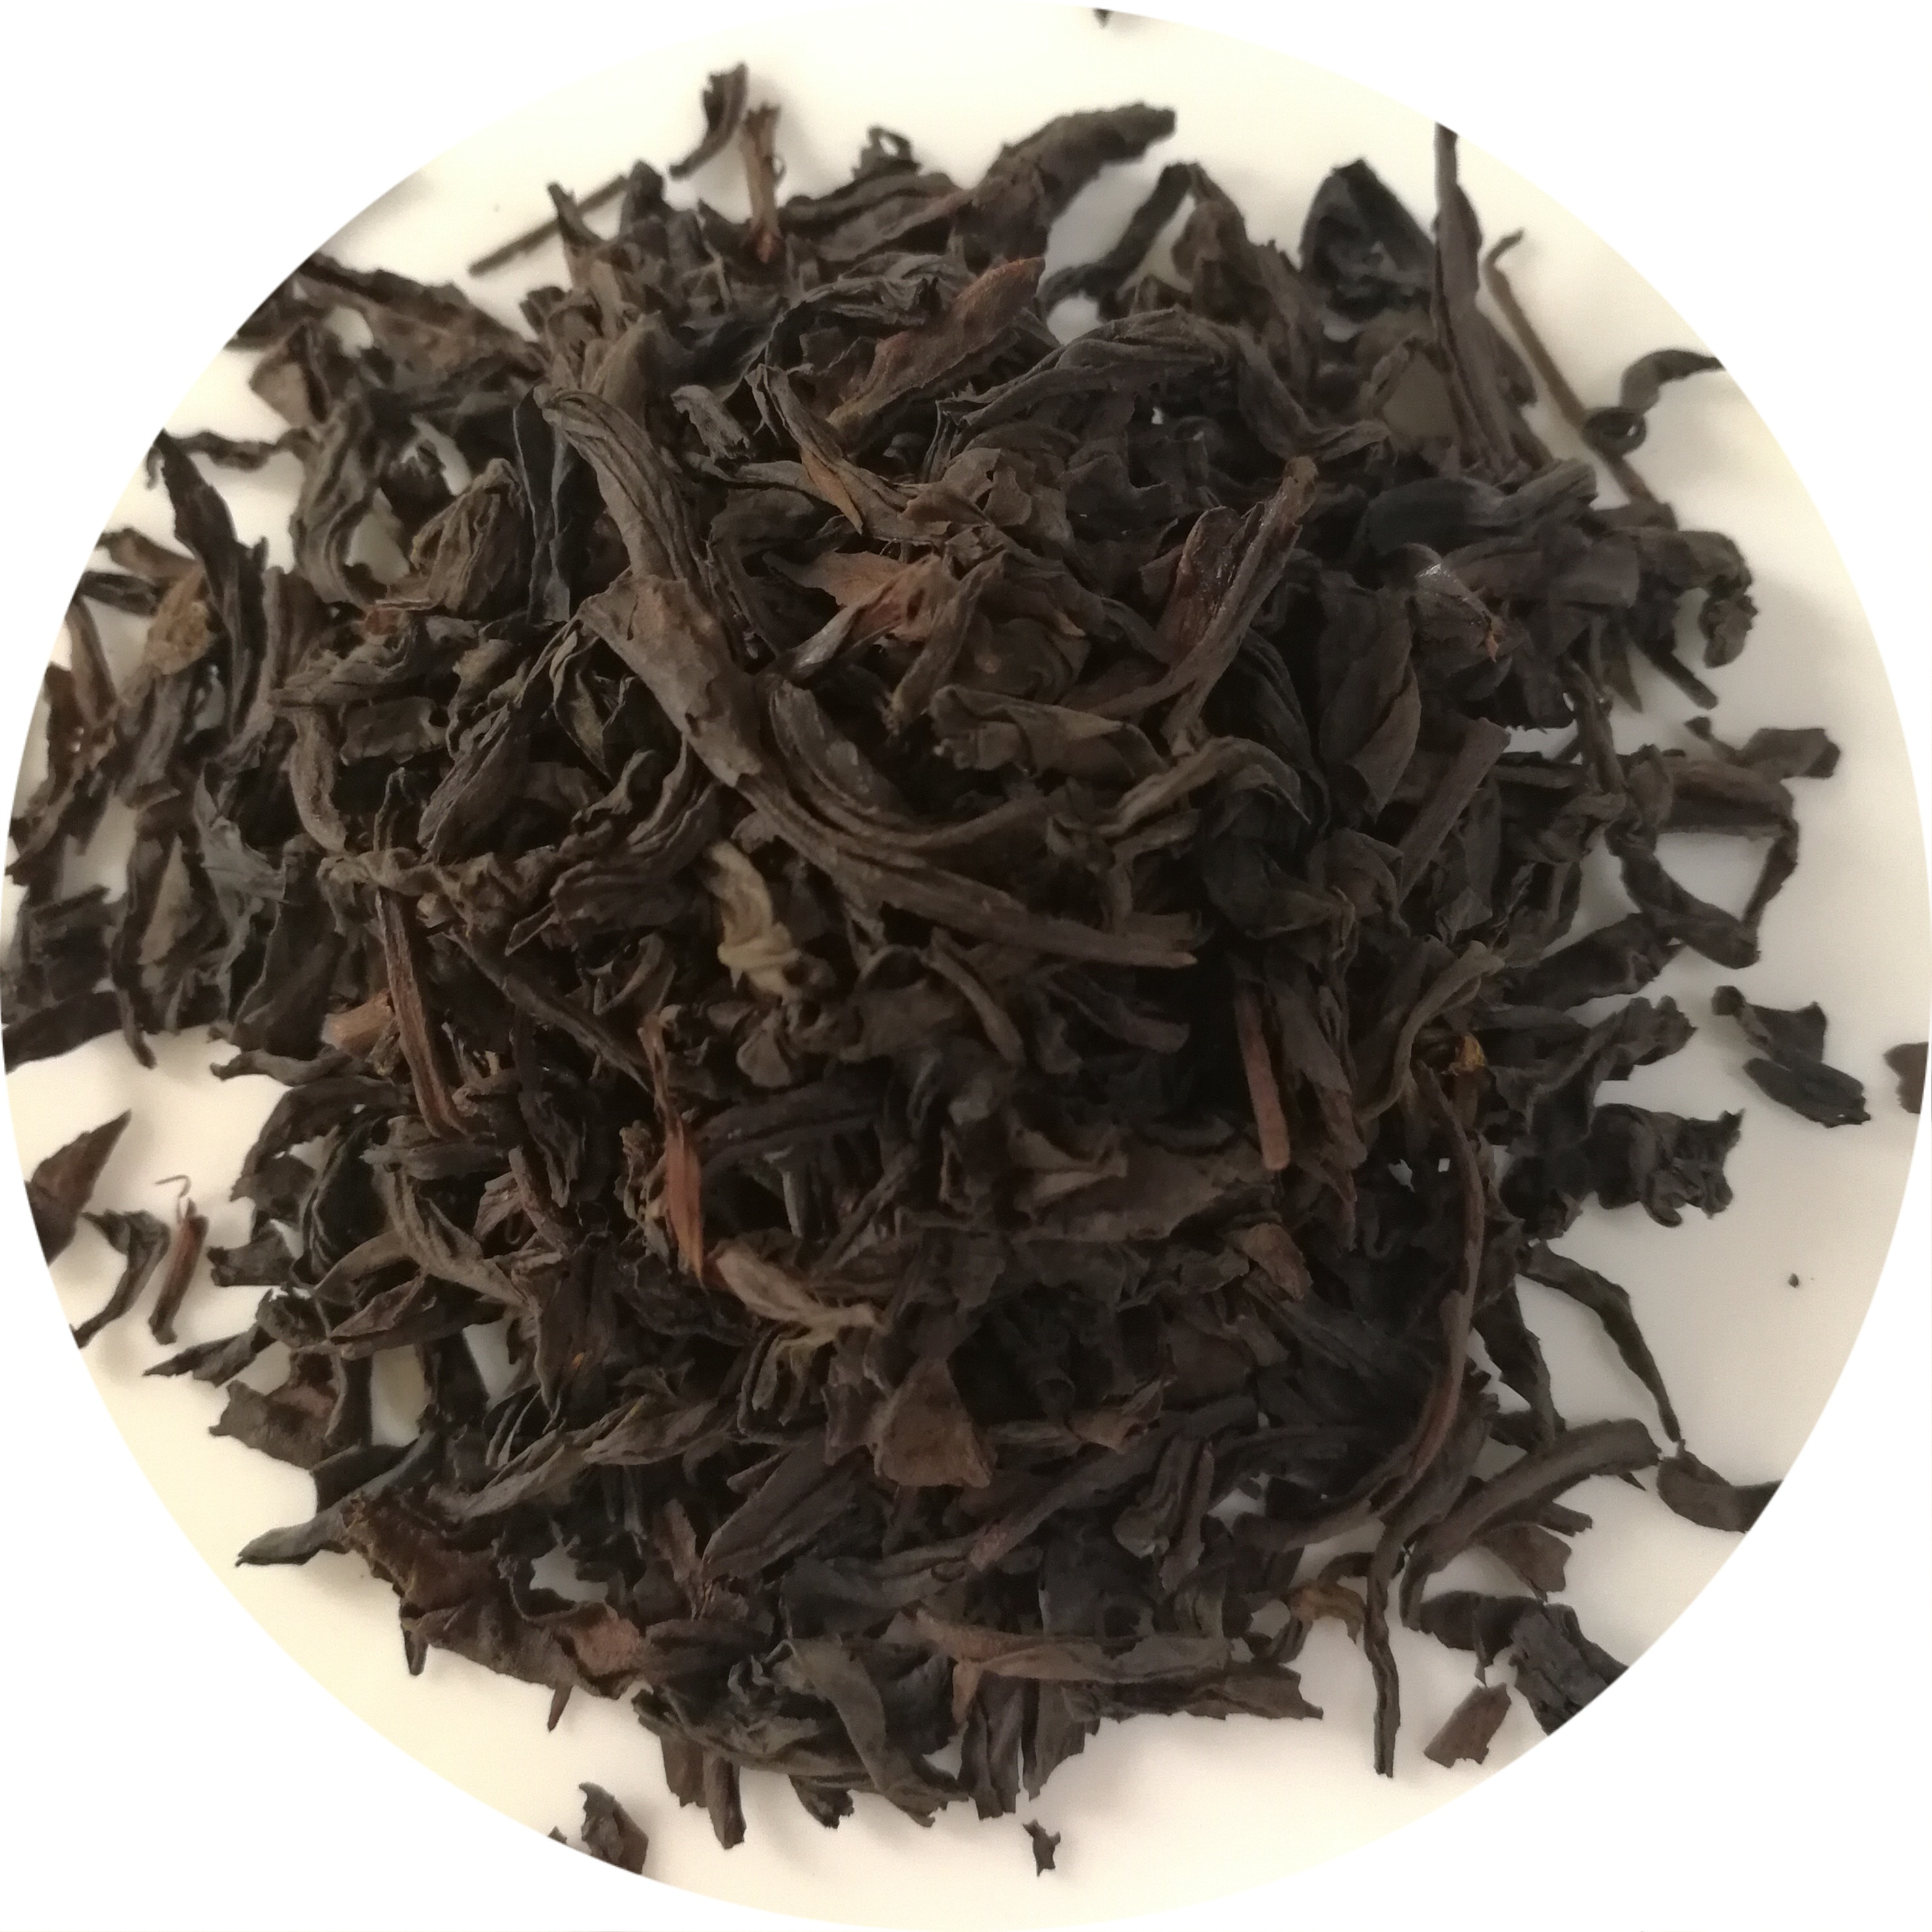 Chinese Narcissus Oolong Wuyi Cliff Tea Leaf with Orchid Fragrance - 4uTea | 4uTea.com